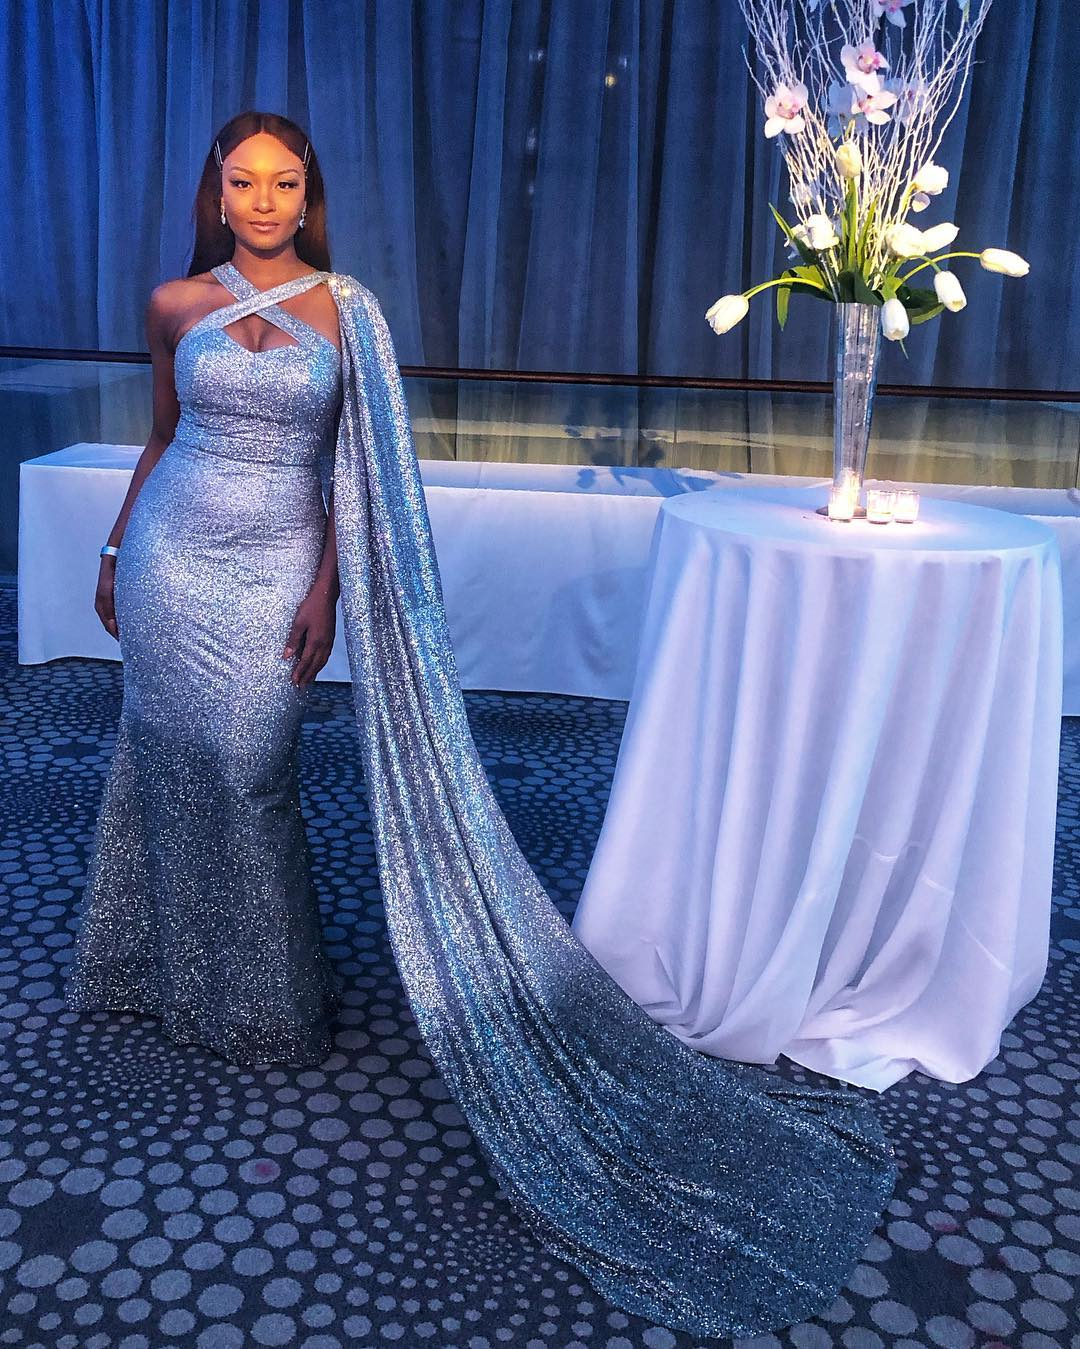 Osas Ighodaro Ajibade attended the 2019 Wash Gala decked in Glitter ✨😍